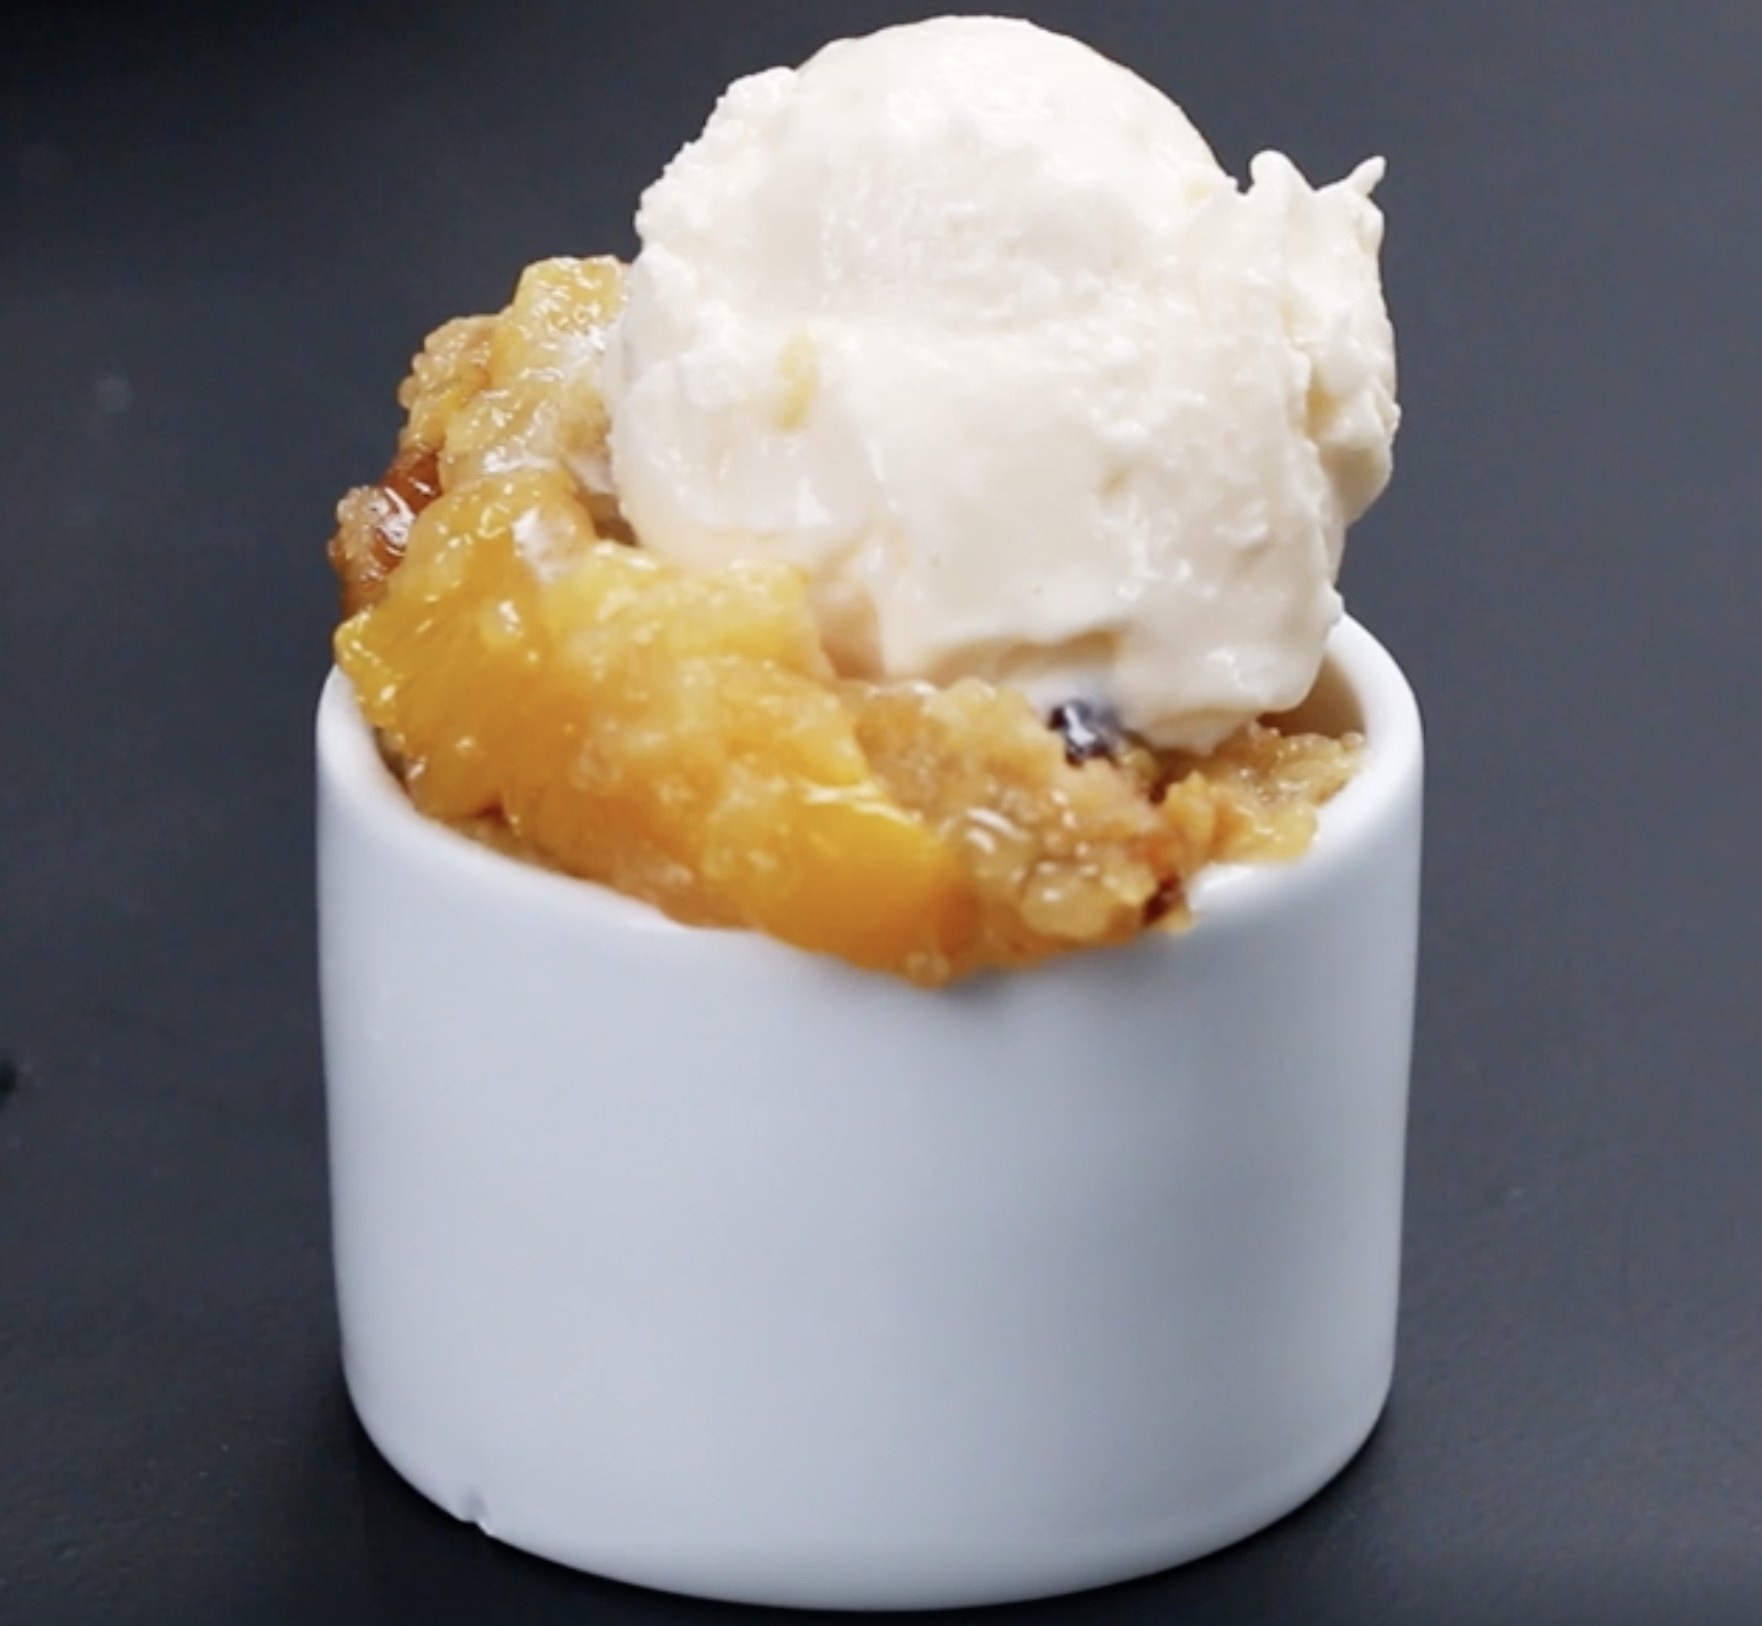 The peach cobbler with icecream on top